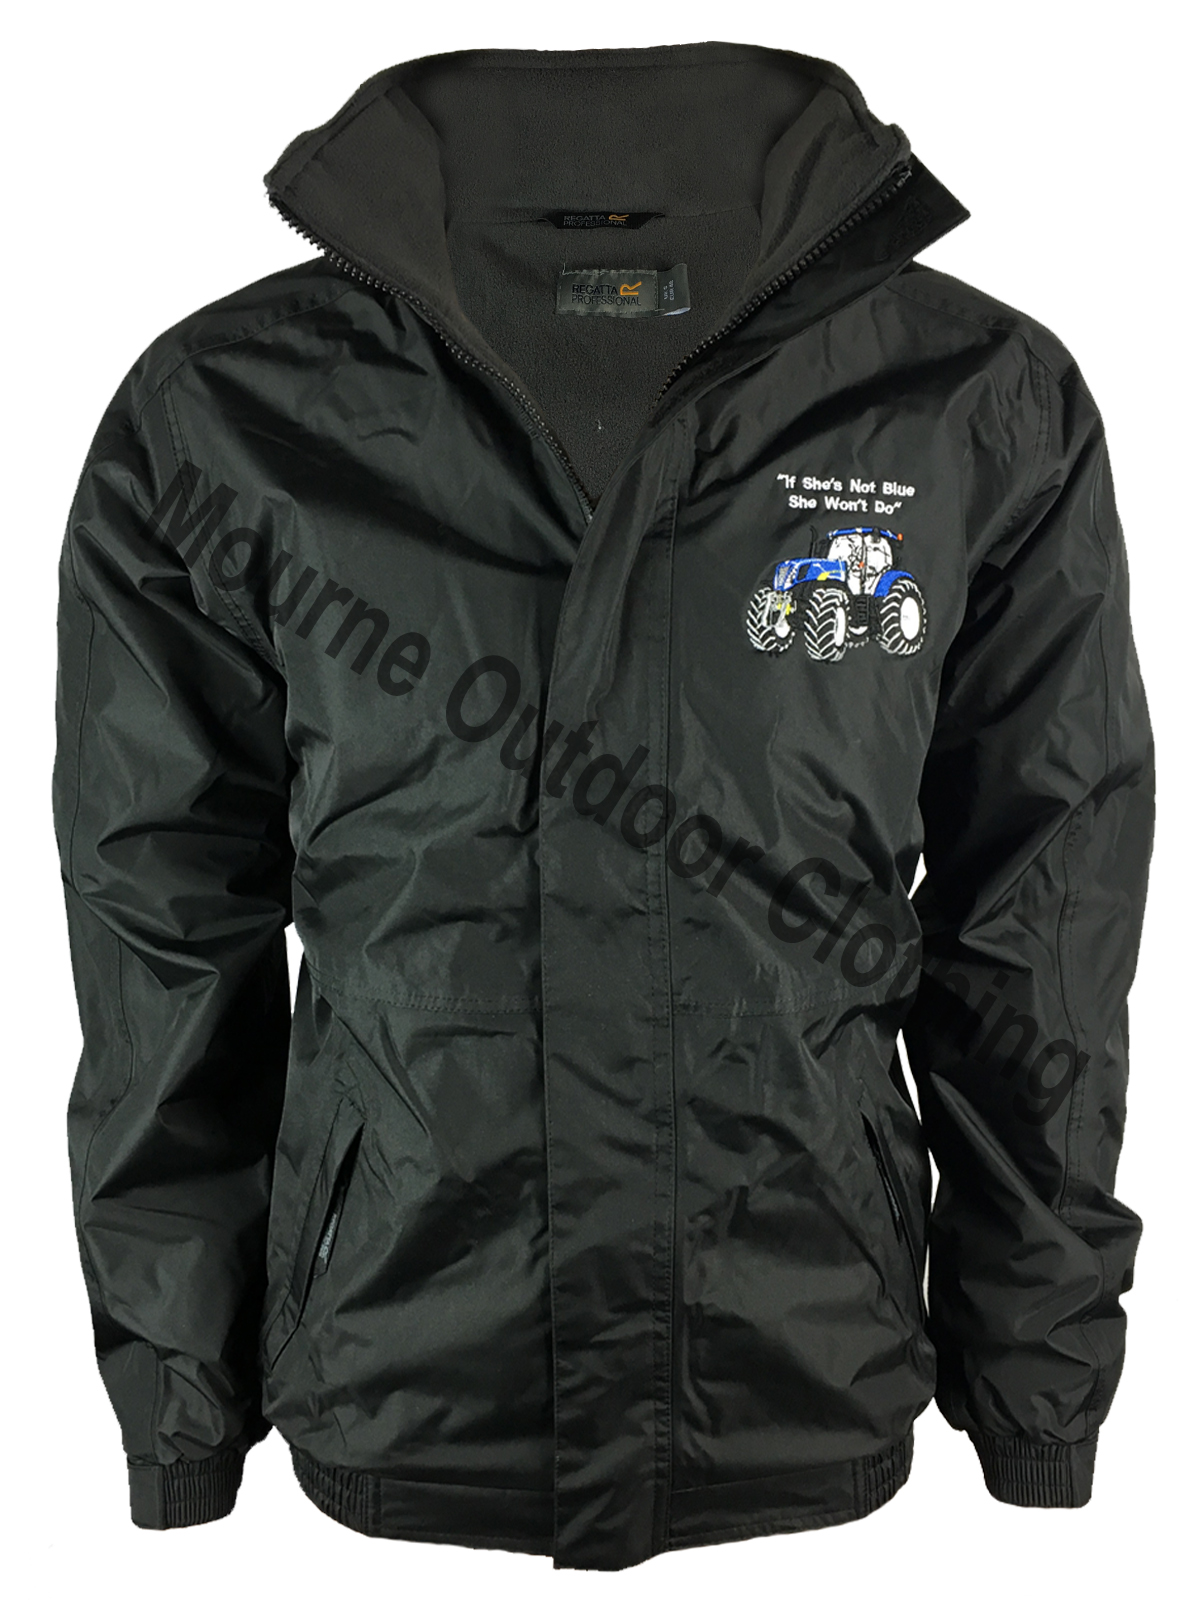 Regatta New Holland Tractor Waterproof Jacket